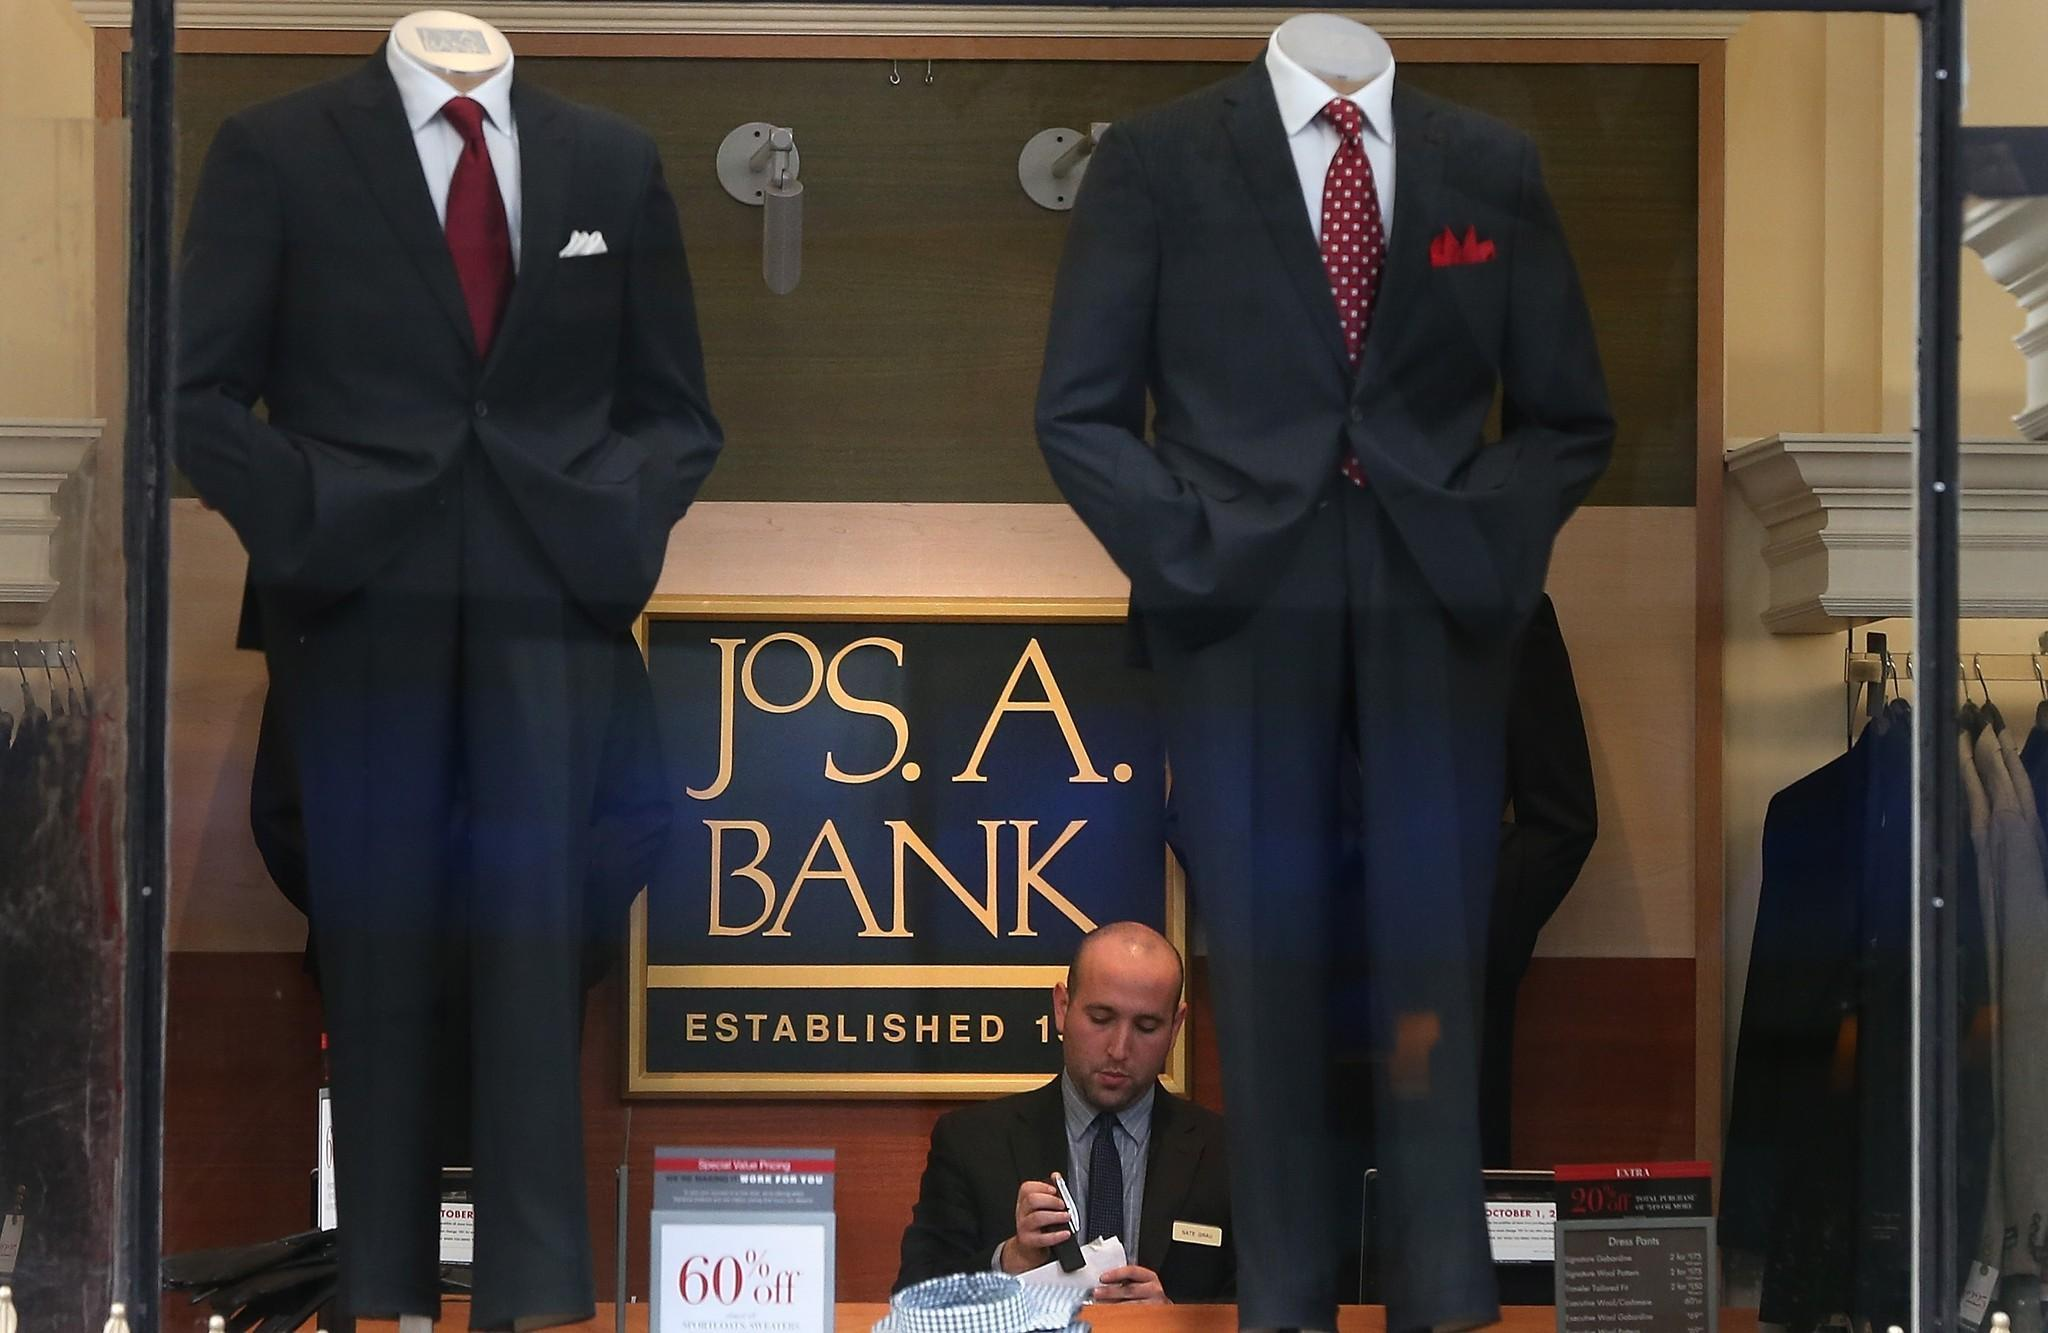 JoS. A. Bank is my favorite men's clothing store (LOVE the wrinkle-fre Traveler's dress shirts!), but I don't have to wear suits at the job I got about 6 months ago. .